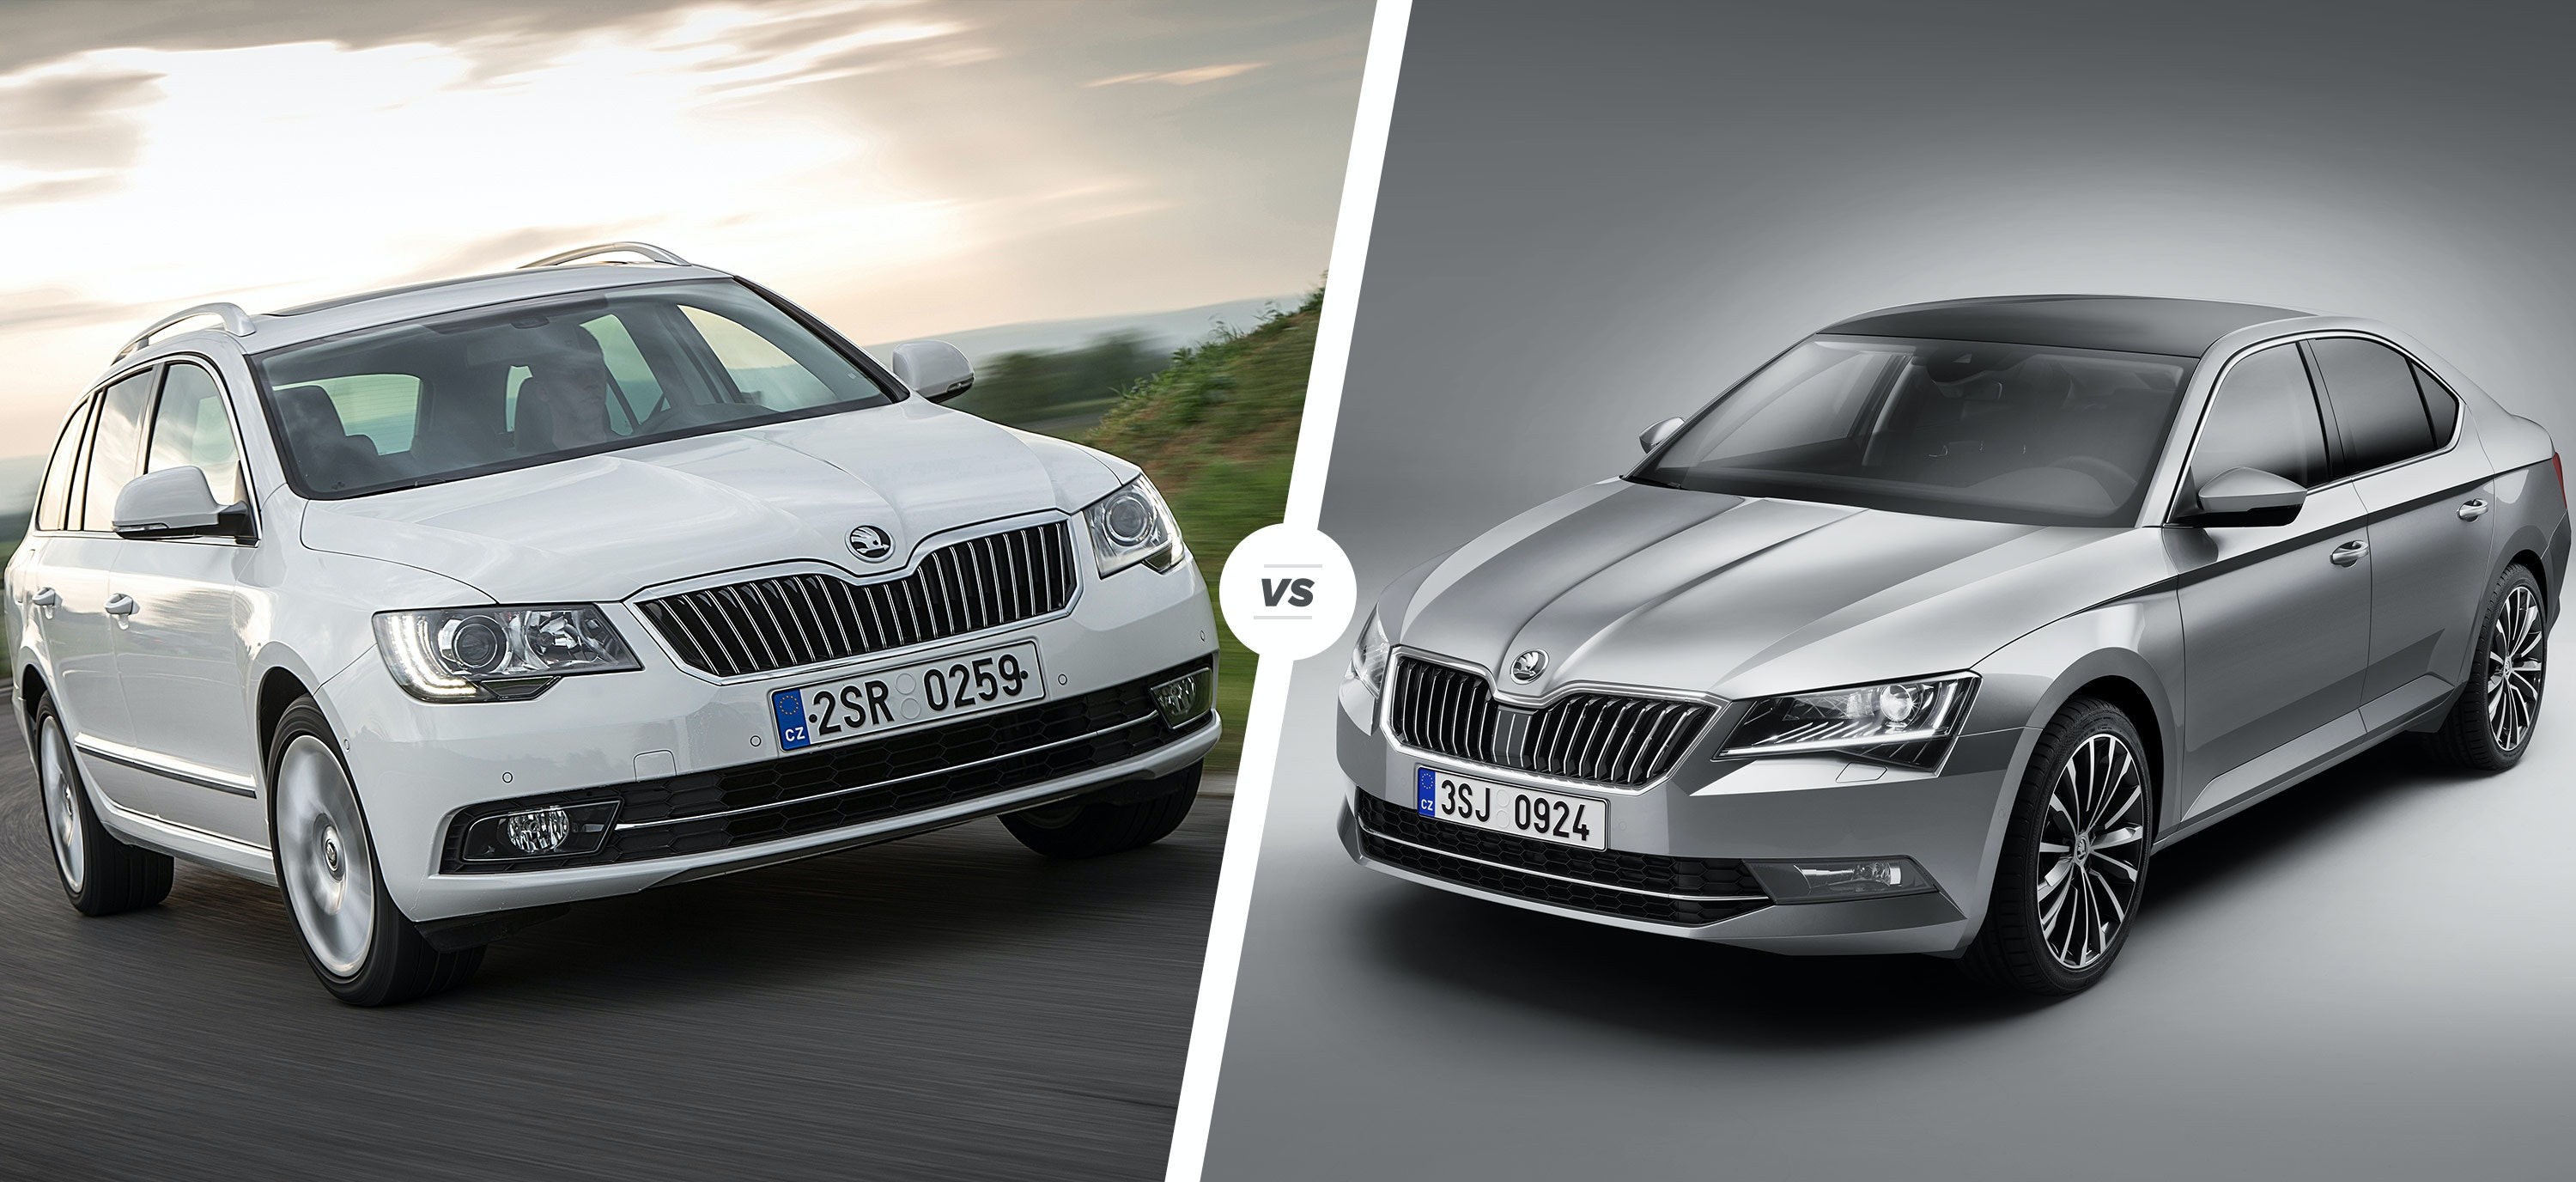 2015 Skoda Superb How Does It Stack Up Against The Old One Carwow